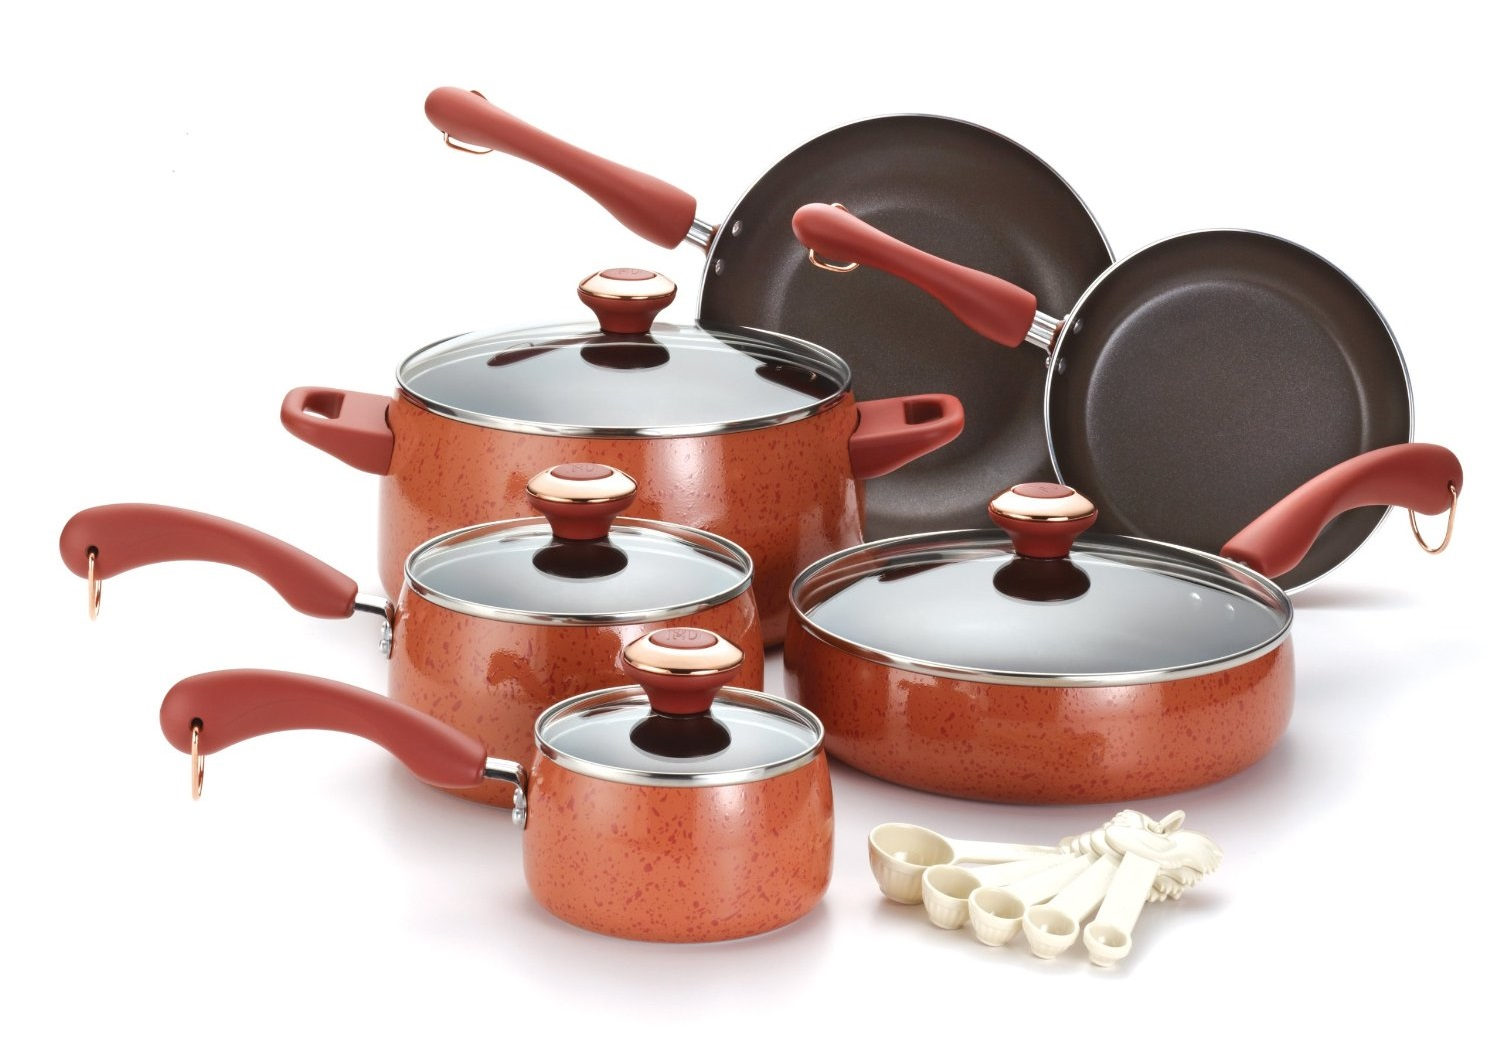 Paula Deen Porcelain Cookware Set 15 Piece Nonstick Review